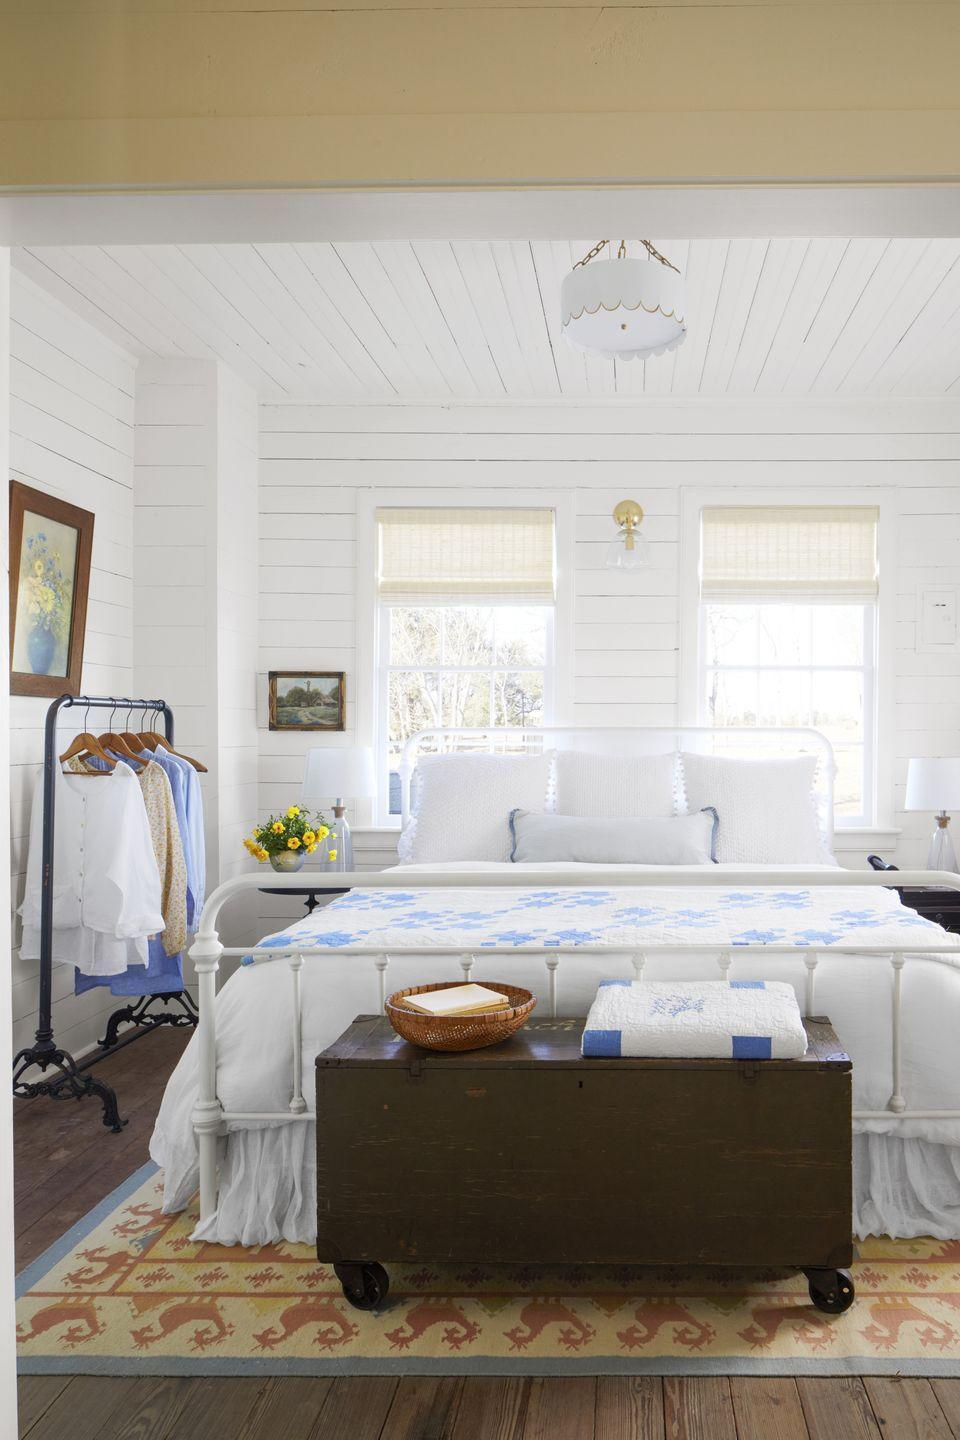 """<p>Nothing says modern farmhouse more than white shiplap. Whether updating existing shiplap boards in an old home or painting newly installed unfinished pine boards, get the fresh and timeless look with a pure white in a matte or eggshell finish. </p><p><strong>Get the Look: </strong><br>Wall Paint Color: <a href=""""https://store.benjaminmoore.com/storefront/index.ep"""" rel=""""nofollow noopener"""" target=""""_blank"""" data-ylk=""""slk:White Dove by Benjamin Moore"""" class=""""link rapid-noclick-resp"""">White Dove by Benjamin Moore</a></p>"""